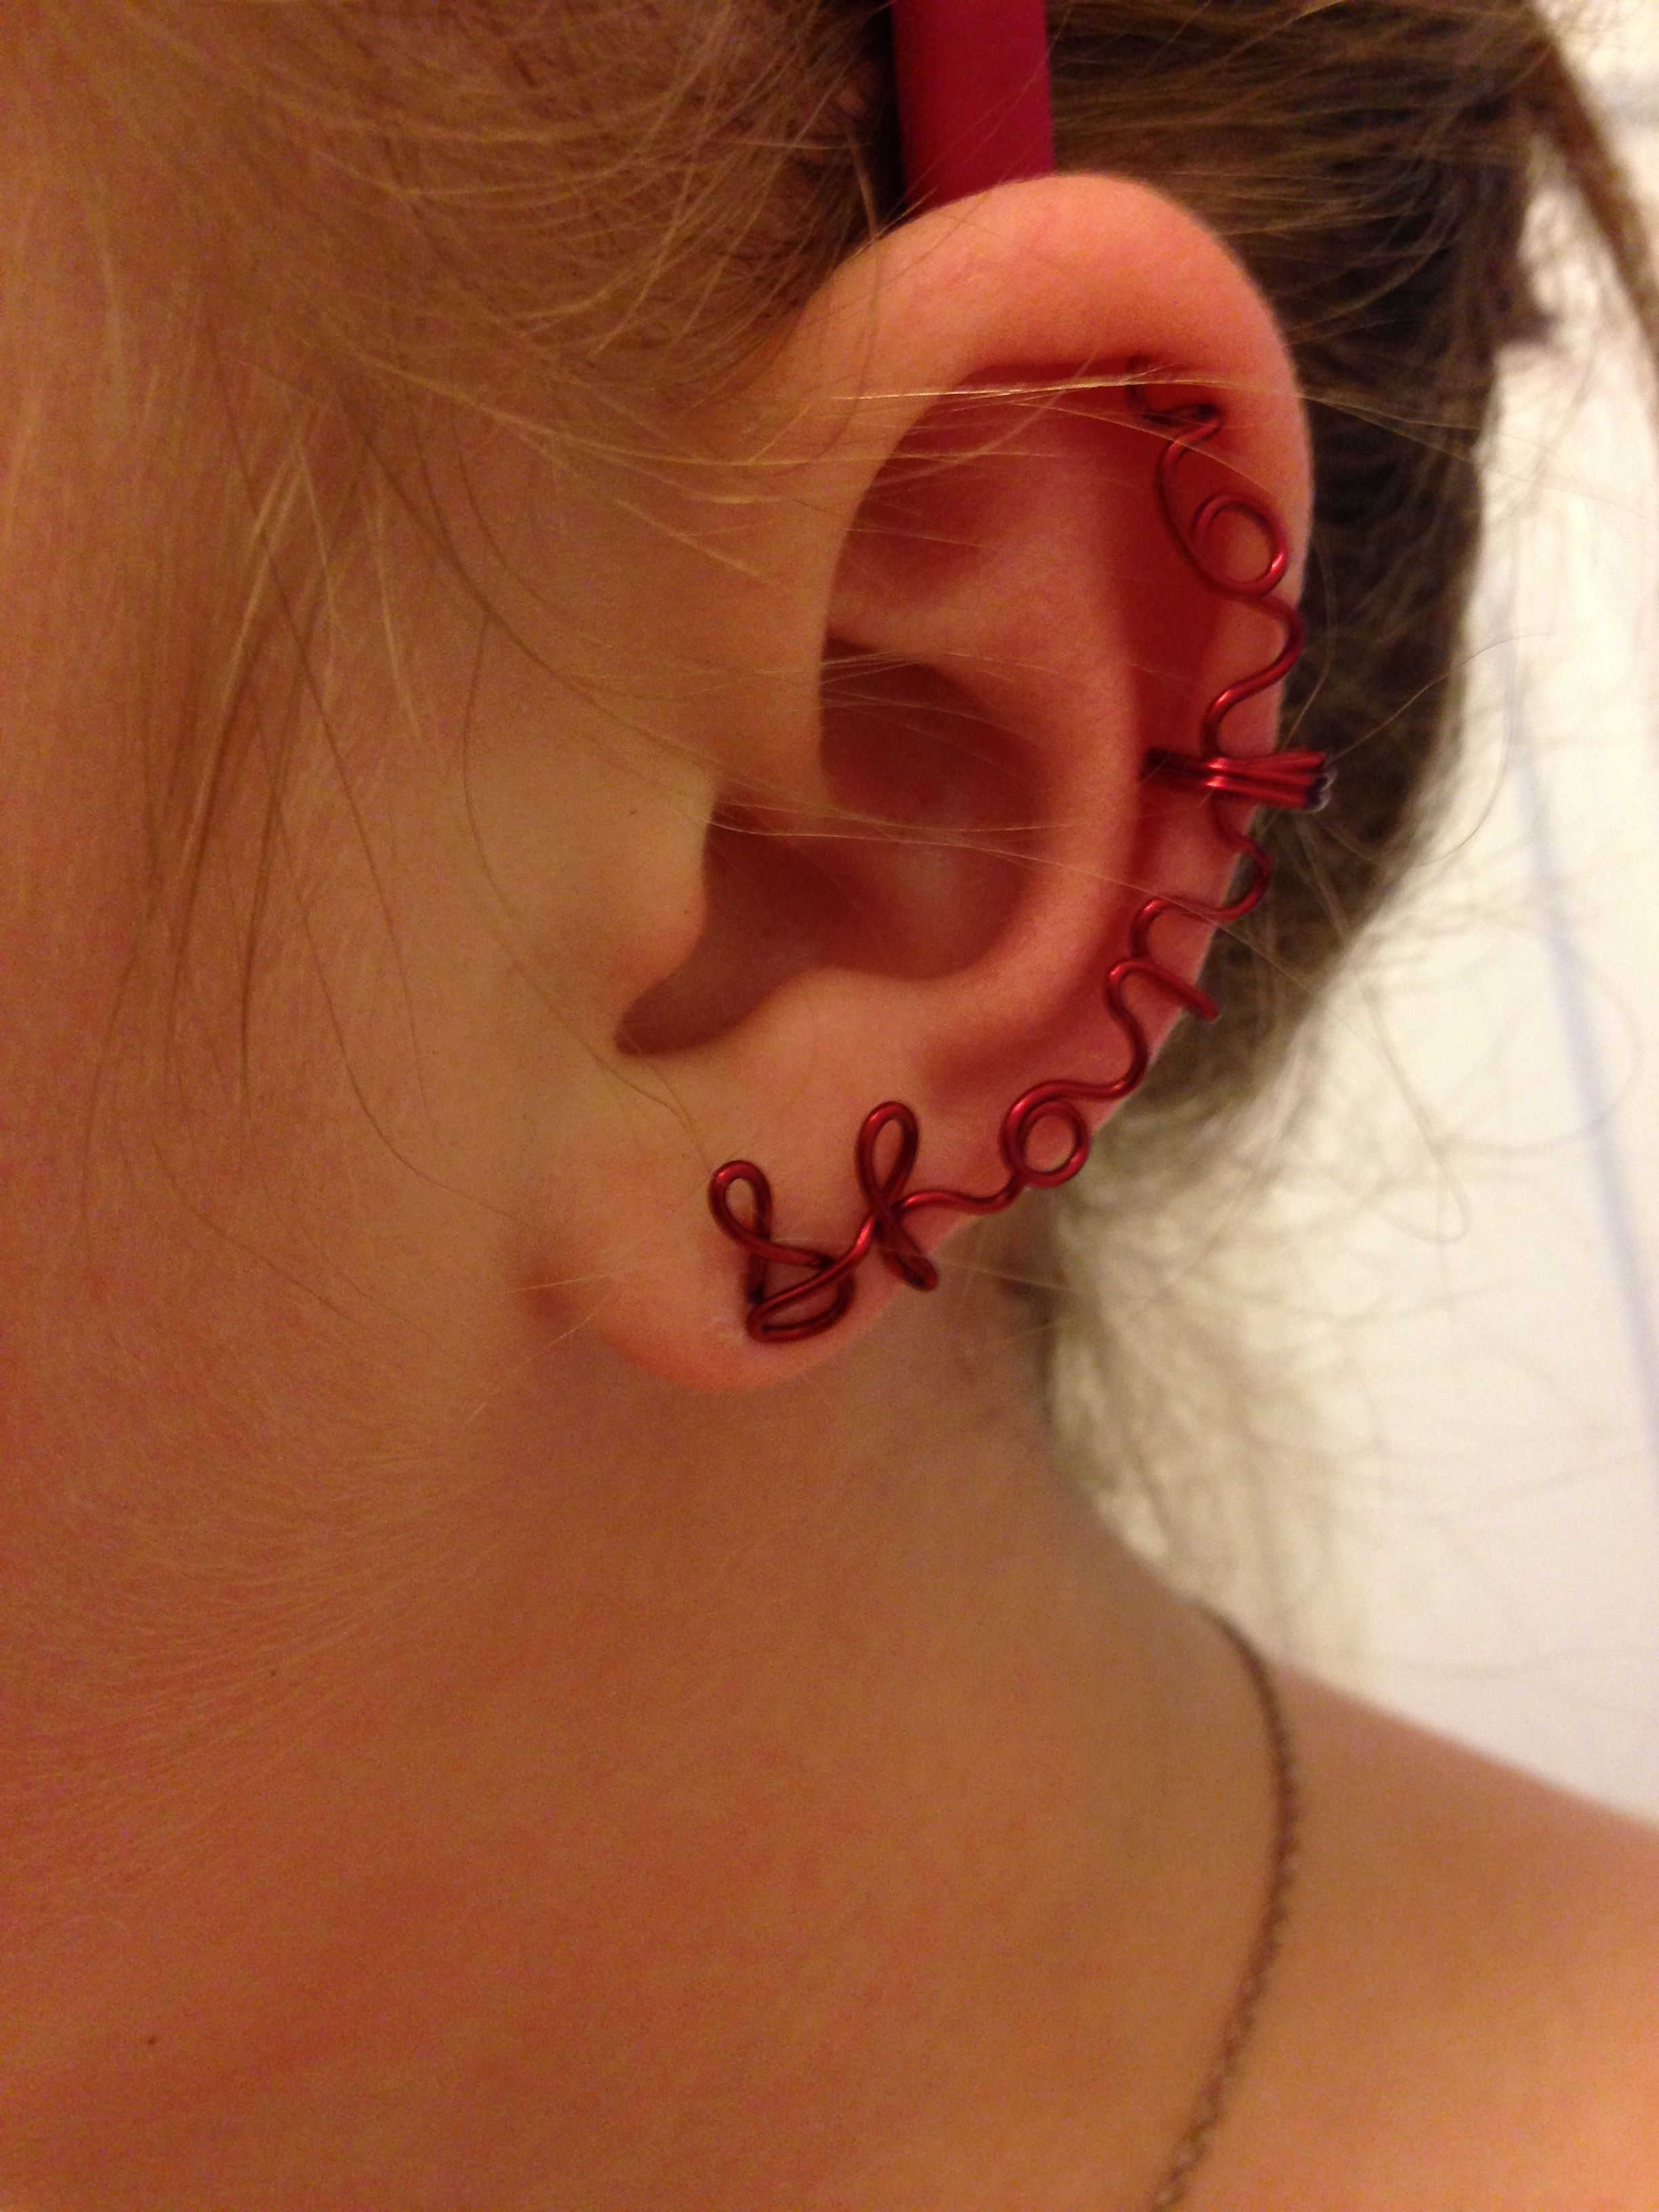 My name is shannon and my friend made an earring with my name on my name is shannon and my friend made an earring with my name on it baditri Choice Image